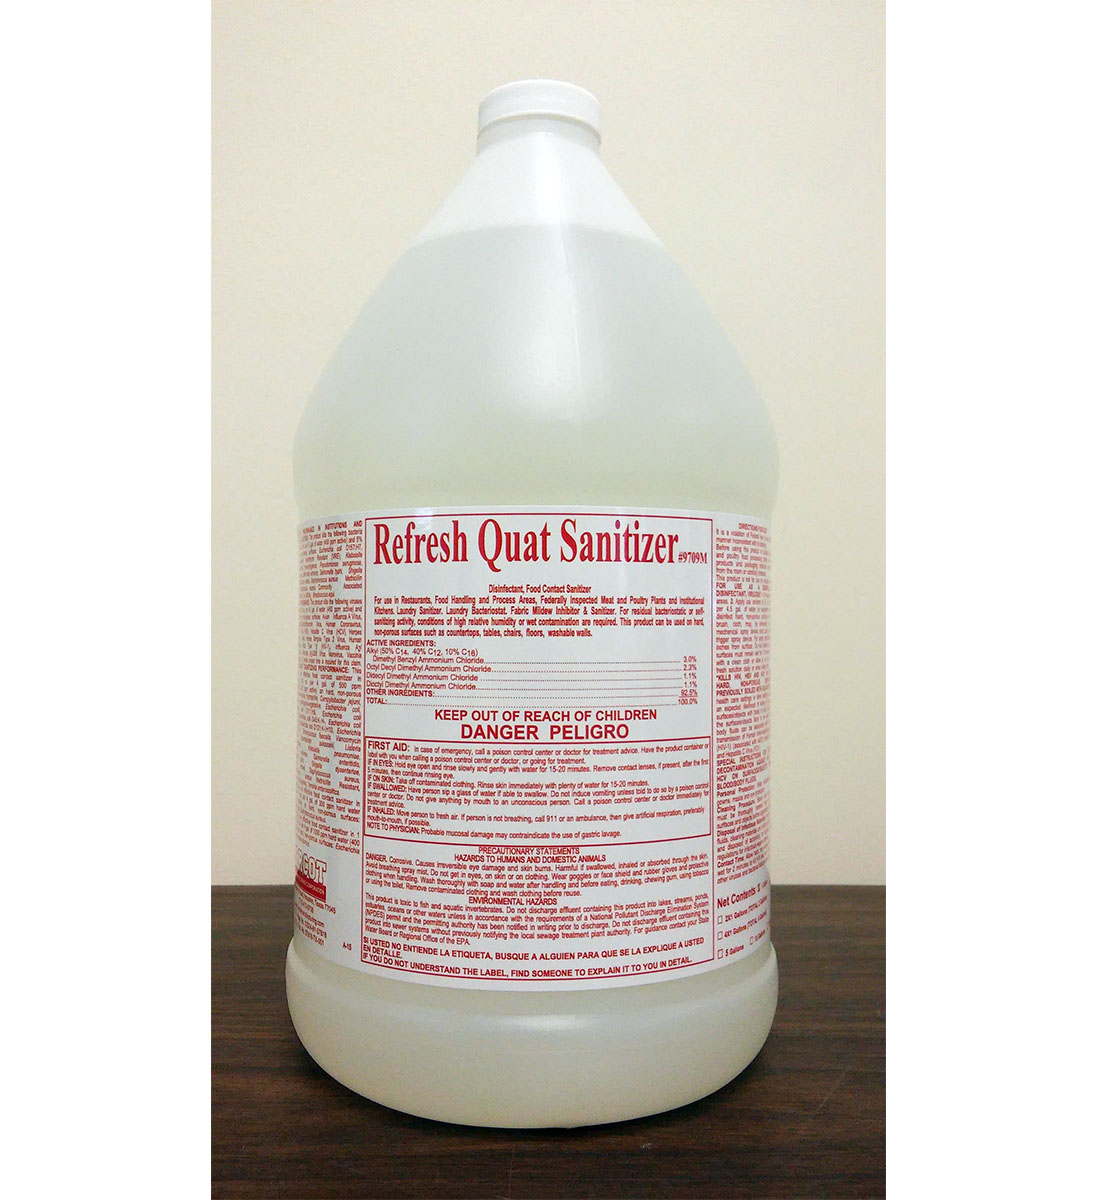 Refresh Quat Sanitizer